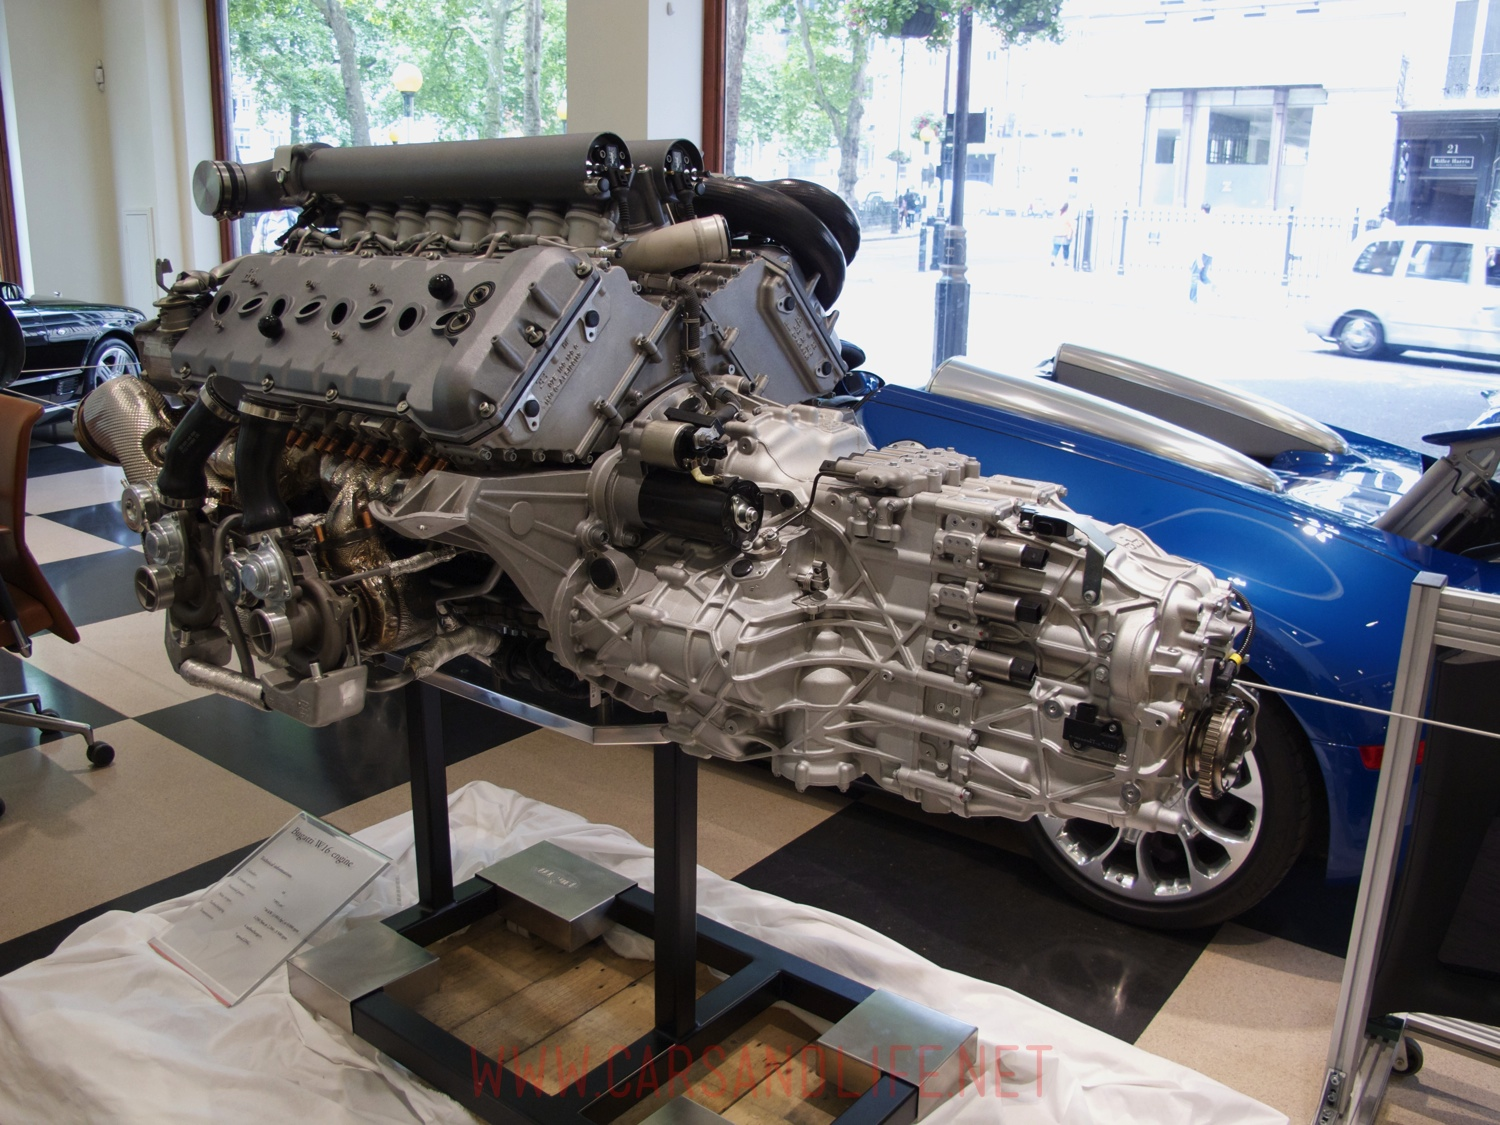 Bugatti Veyron W16 Engine And Gearbox